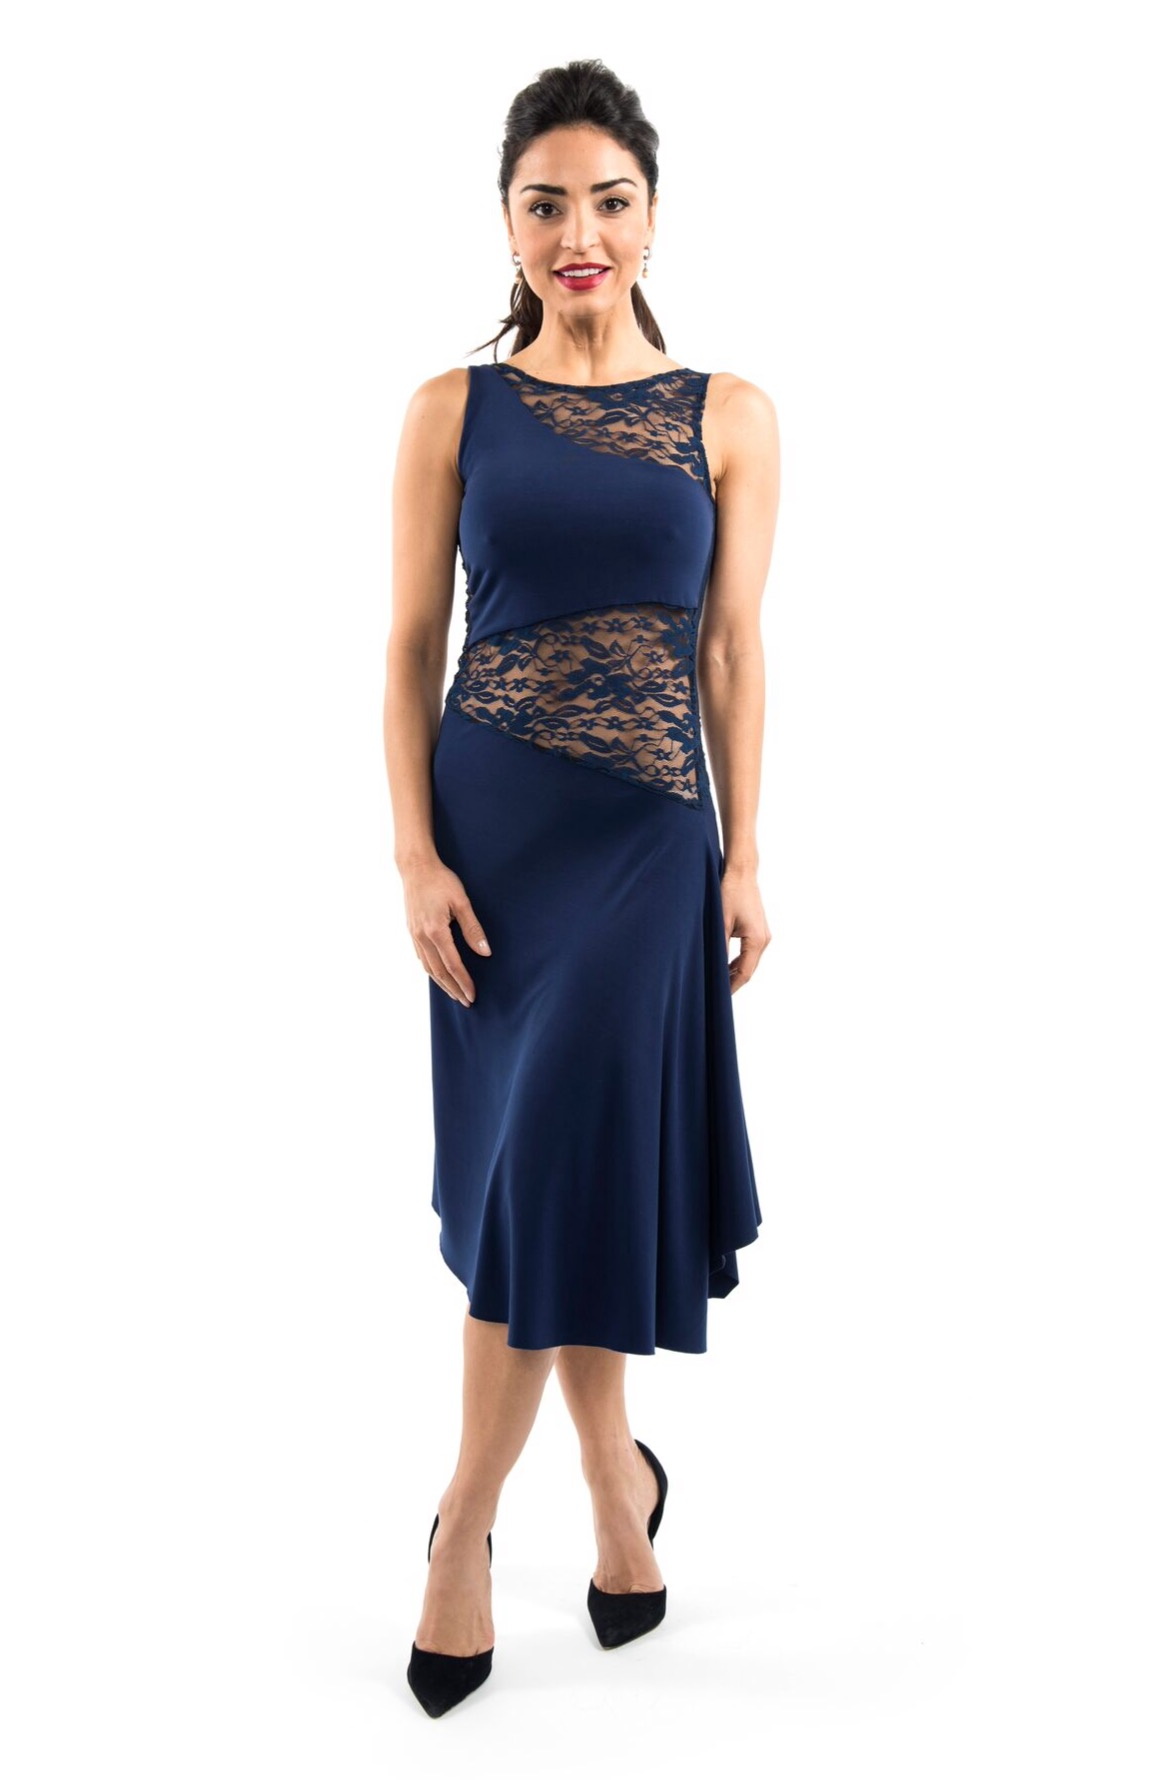 Best Argentine tango dress lace